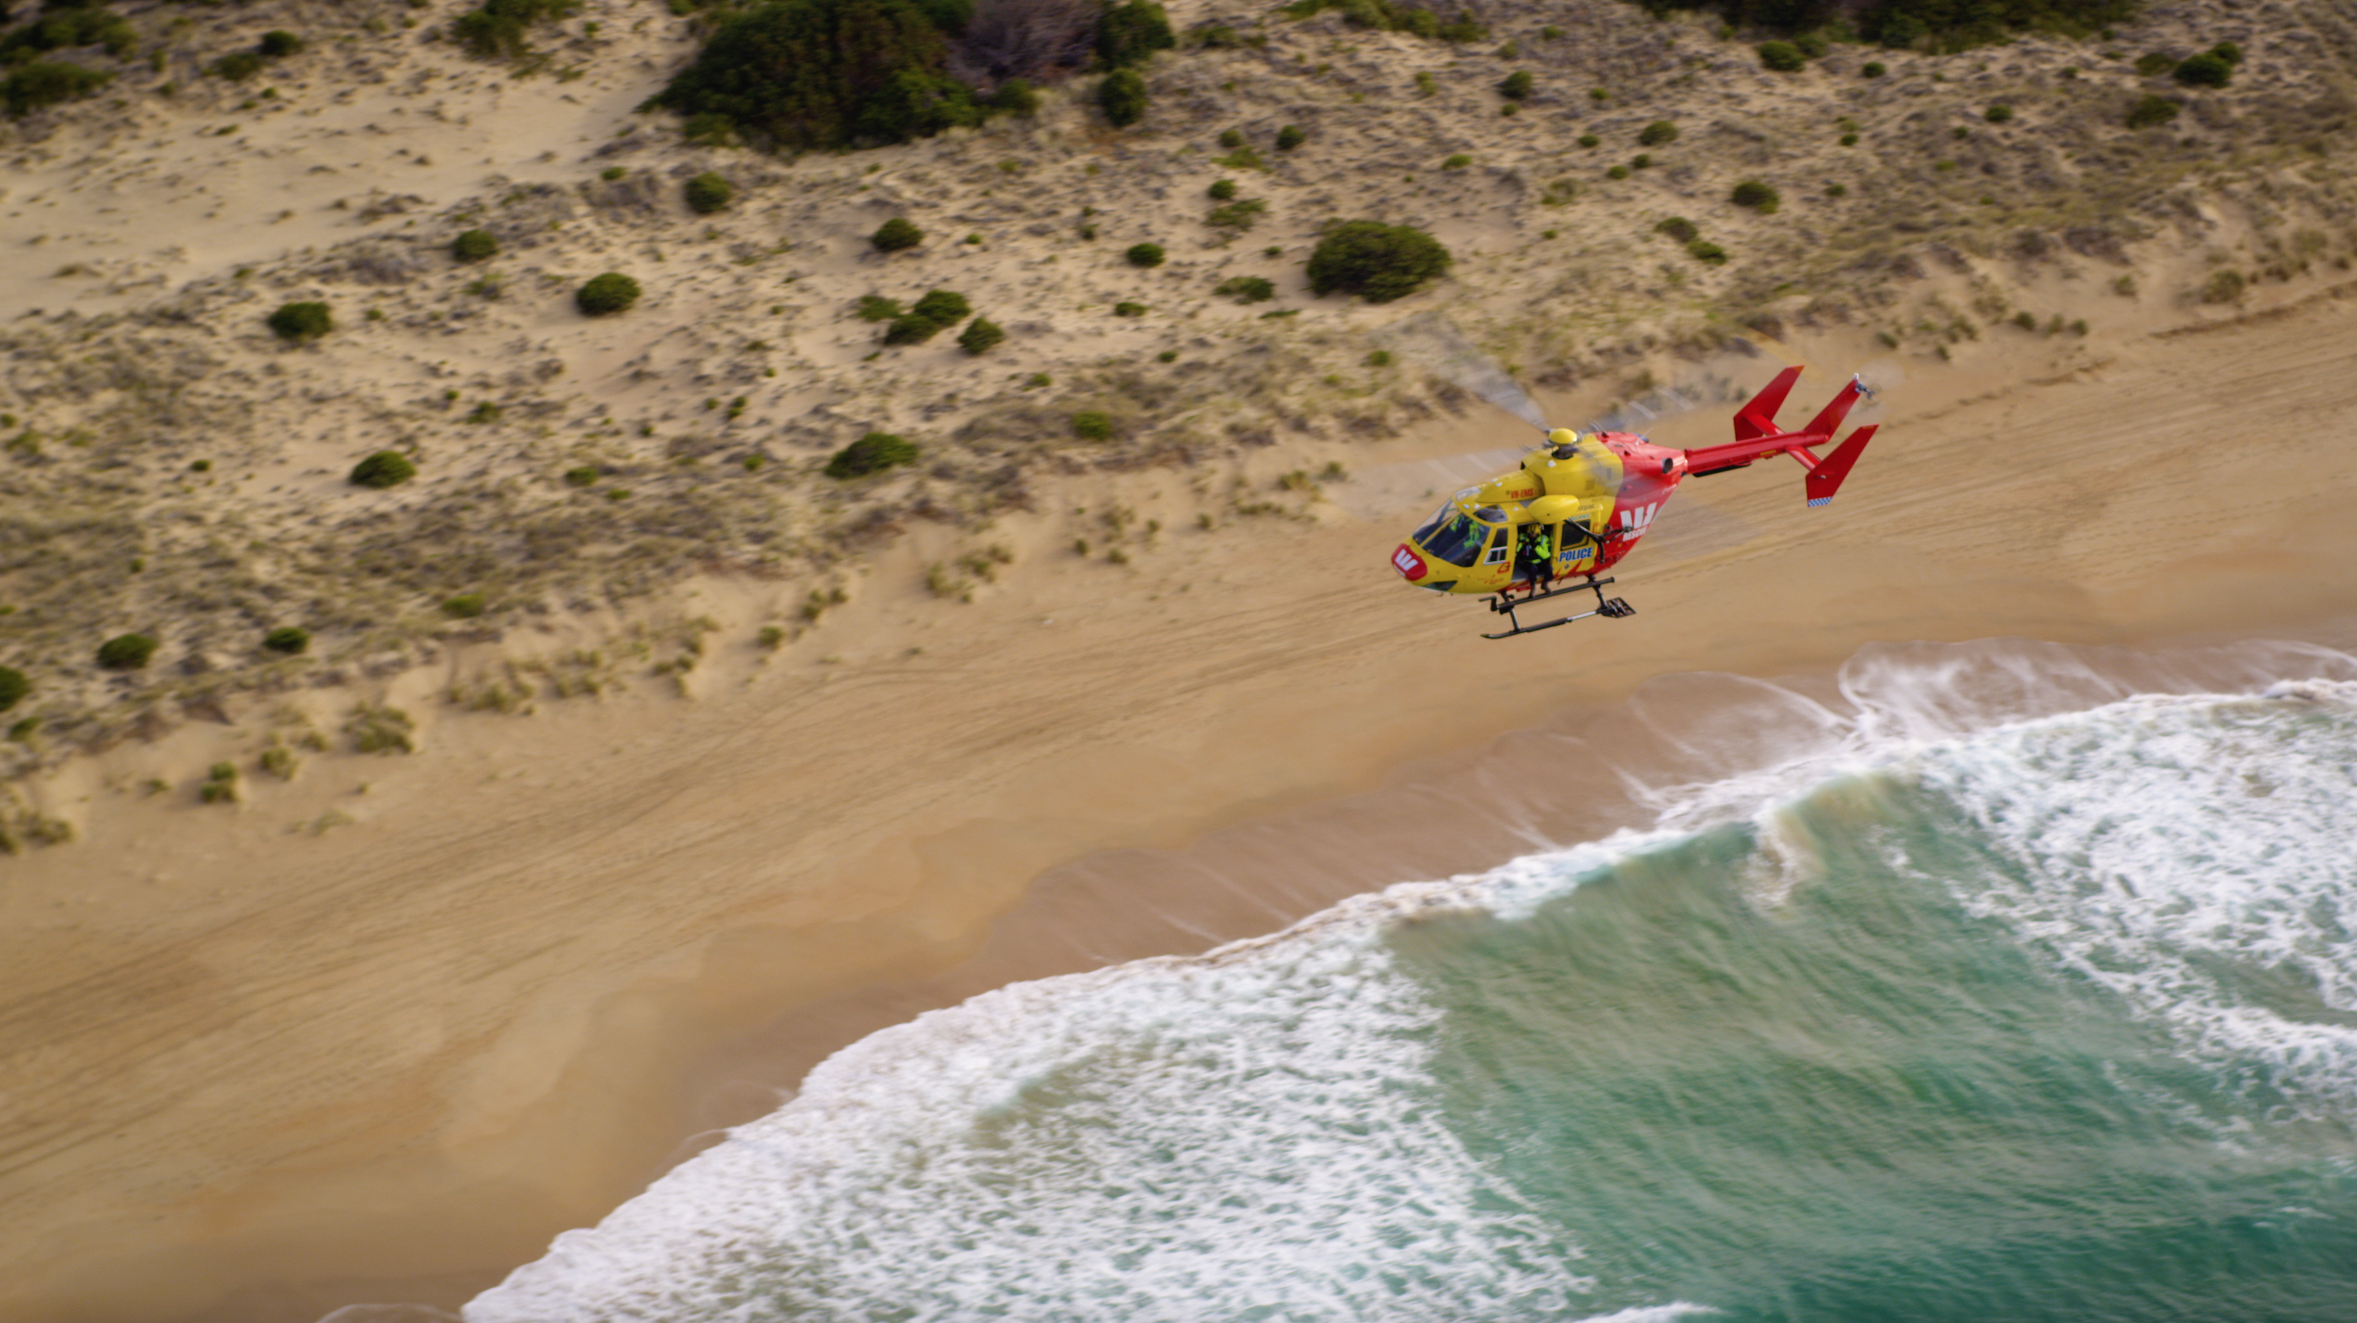 Helicopter over Roaring Beach